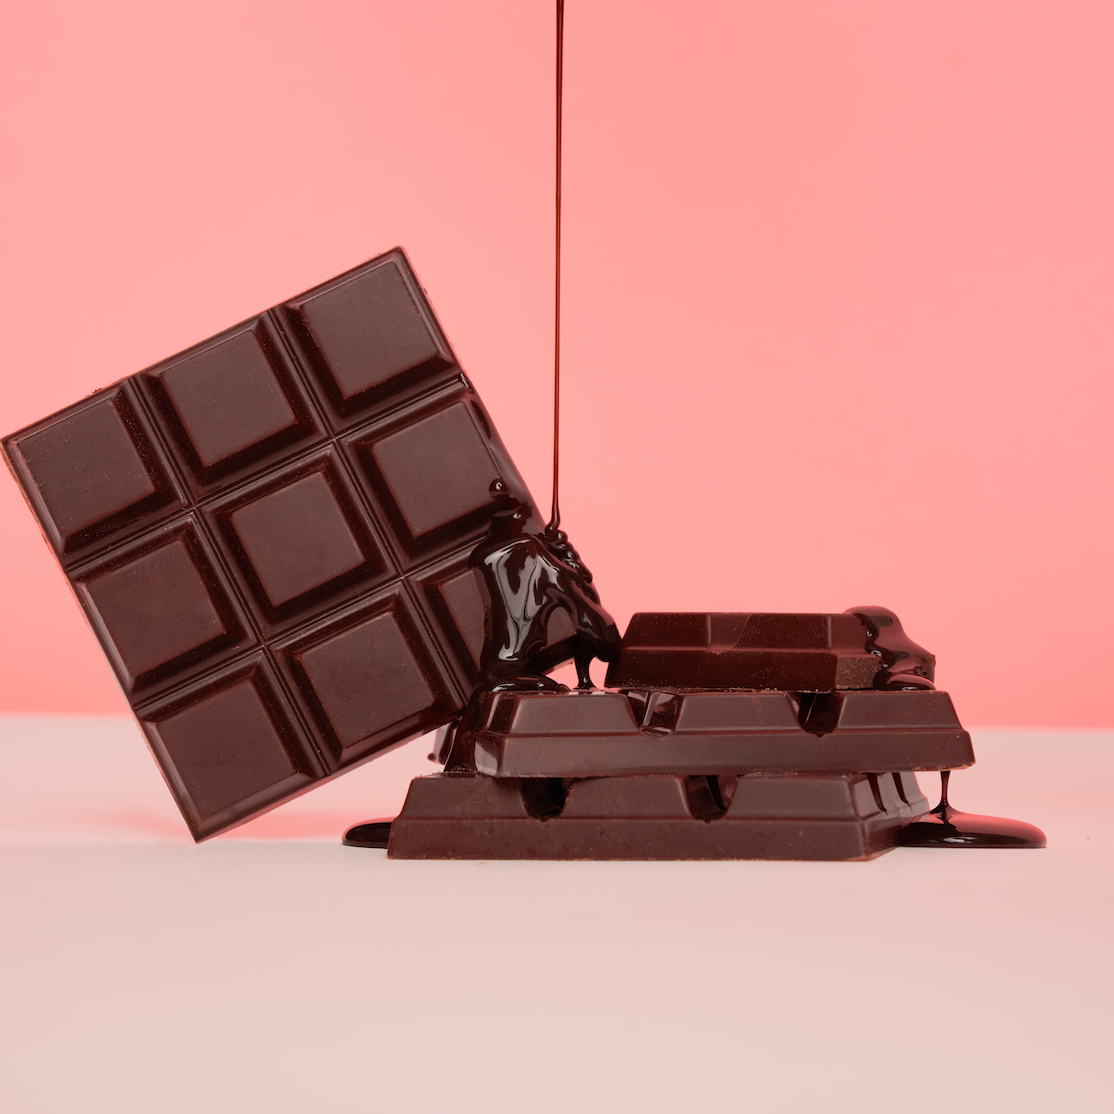 Beauty Bar Chocolate Image Nailed It Chocolate Pouring over Chocolate on Pink Backdrop